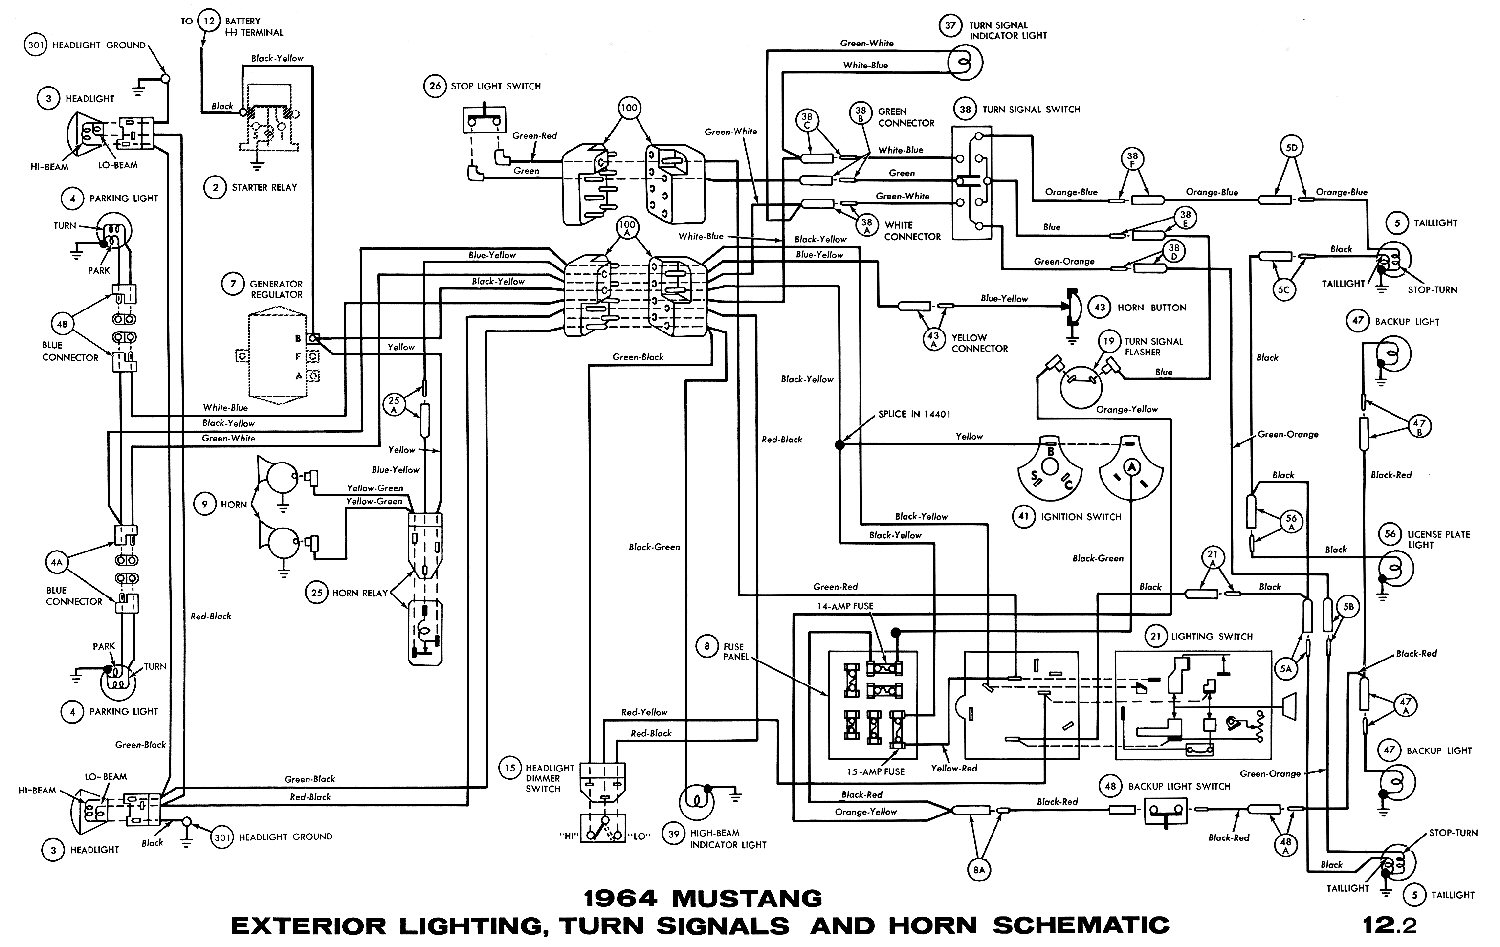 1964i 1964 mustang wiring diagrams average joe restoration 1967 mustang ignition wiring diagram at bayanpartner.co